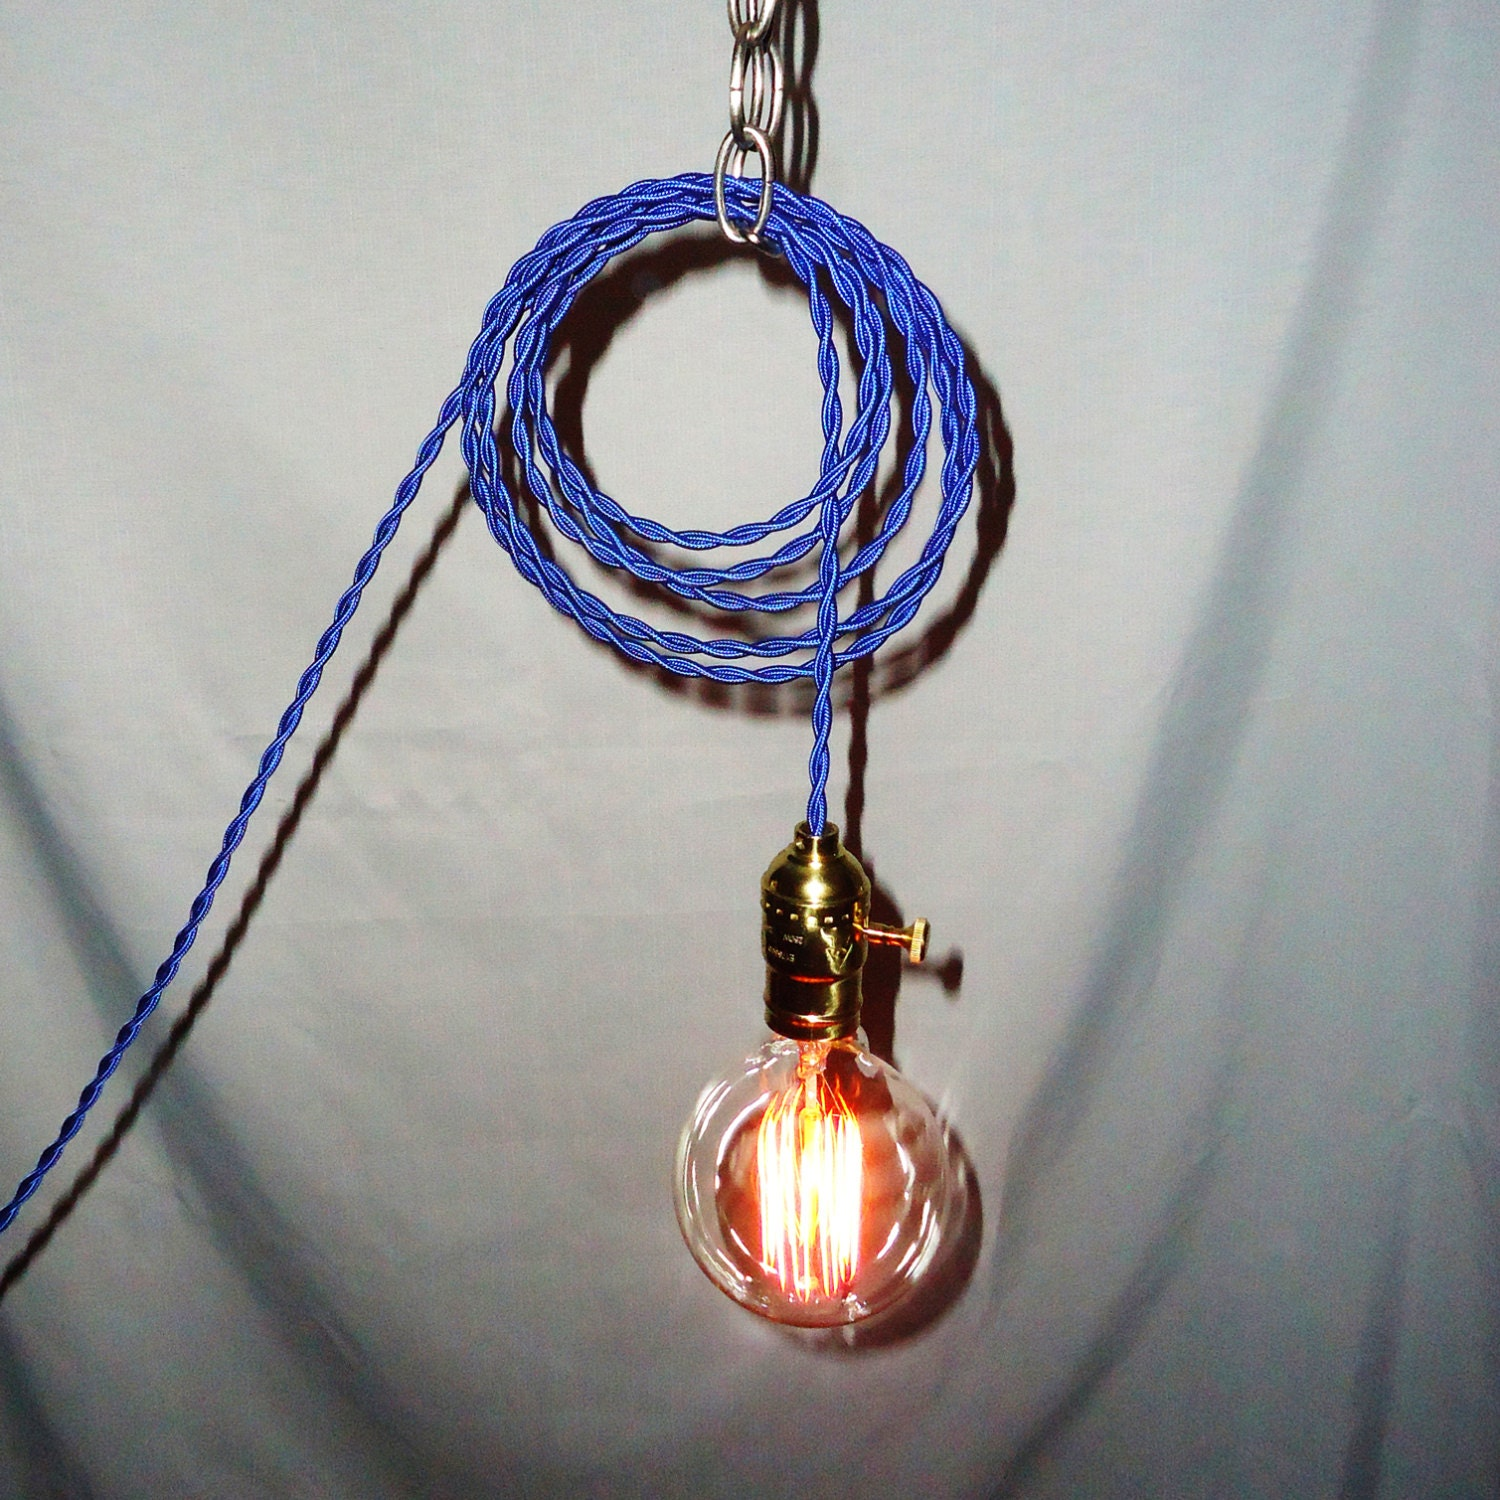 hanging lamp twisted blue cord exposed edison bulb. Black Bedroom Furniture Sets. Home Design Ideas